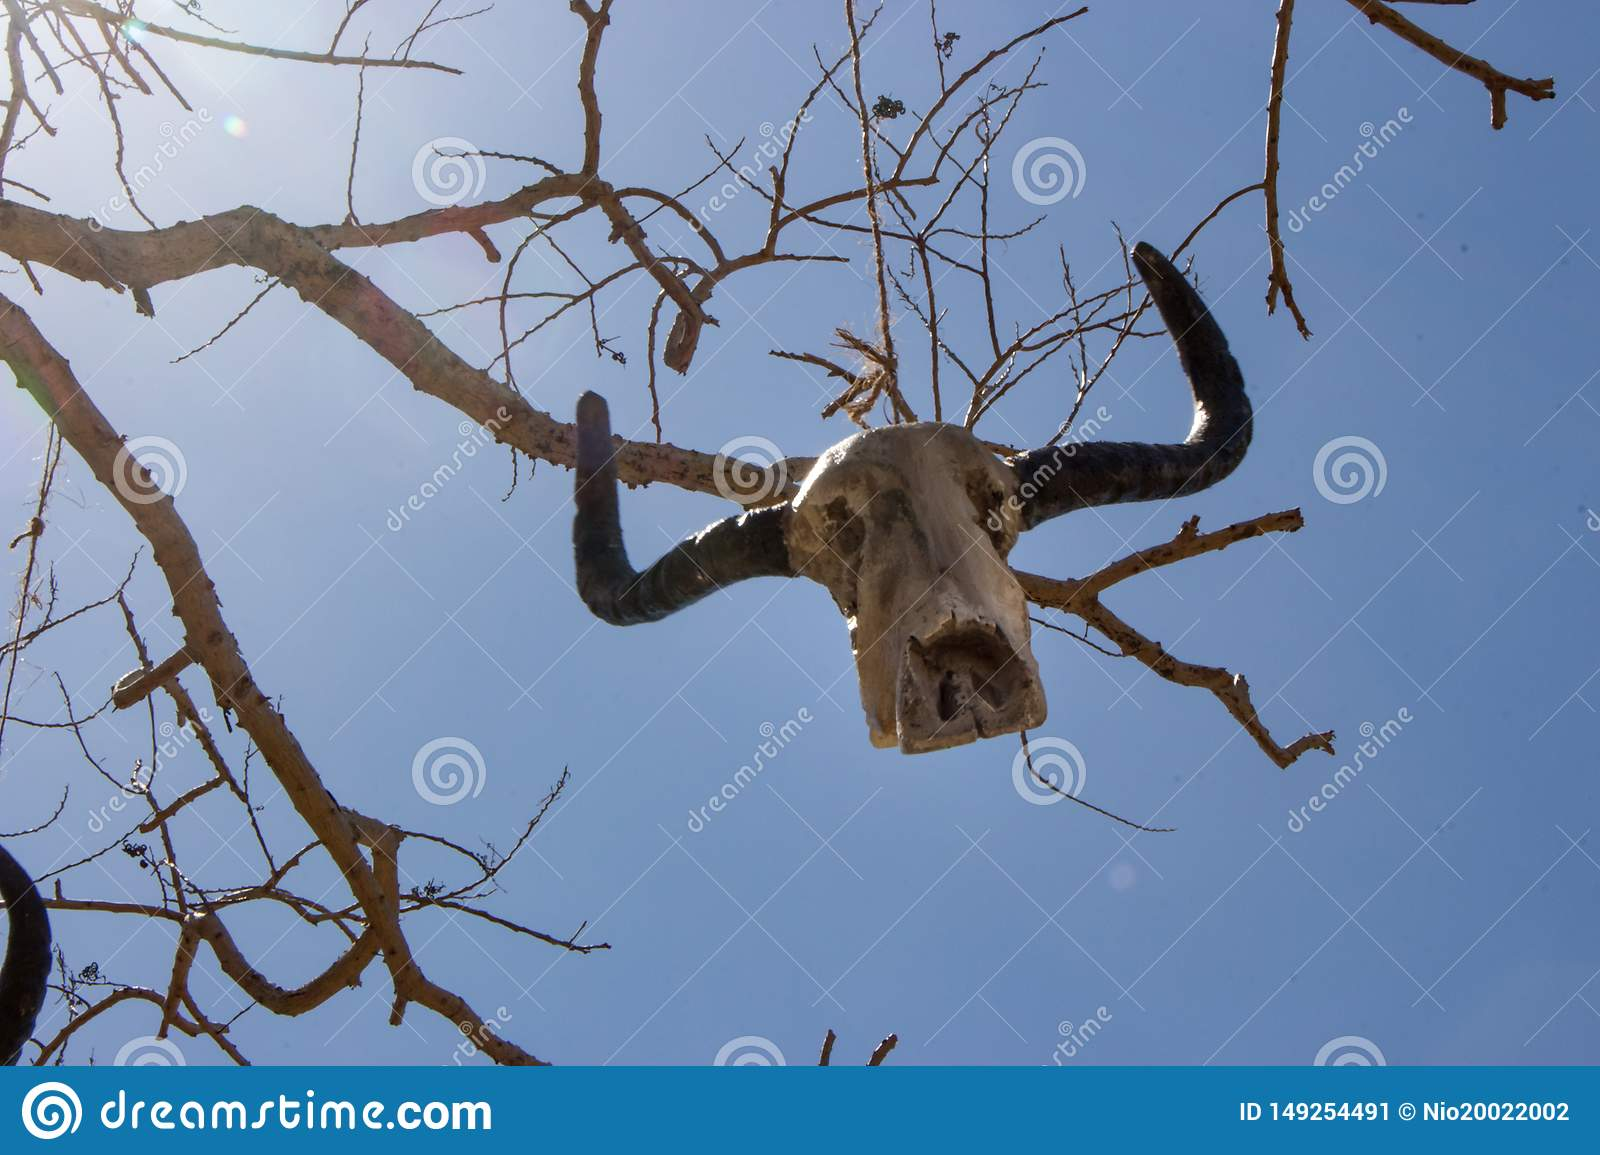 Weathered skull of cow on bare branches. Bull skull hanging on rope. Death and sacrifice concept. Head of dead cow.